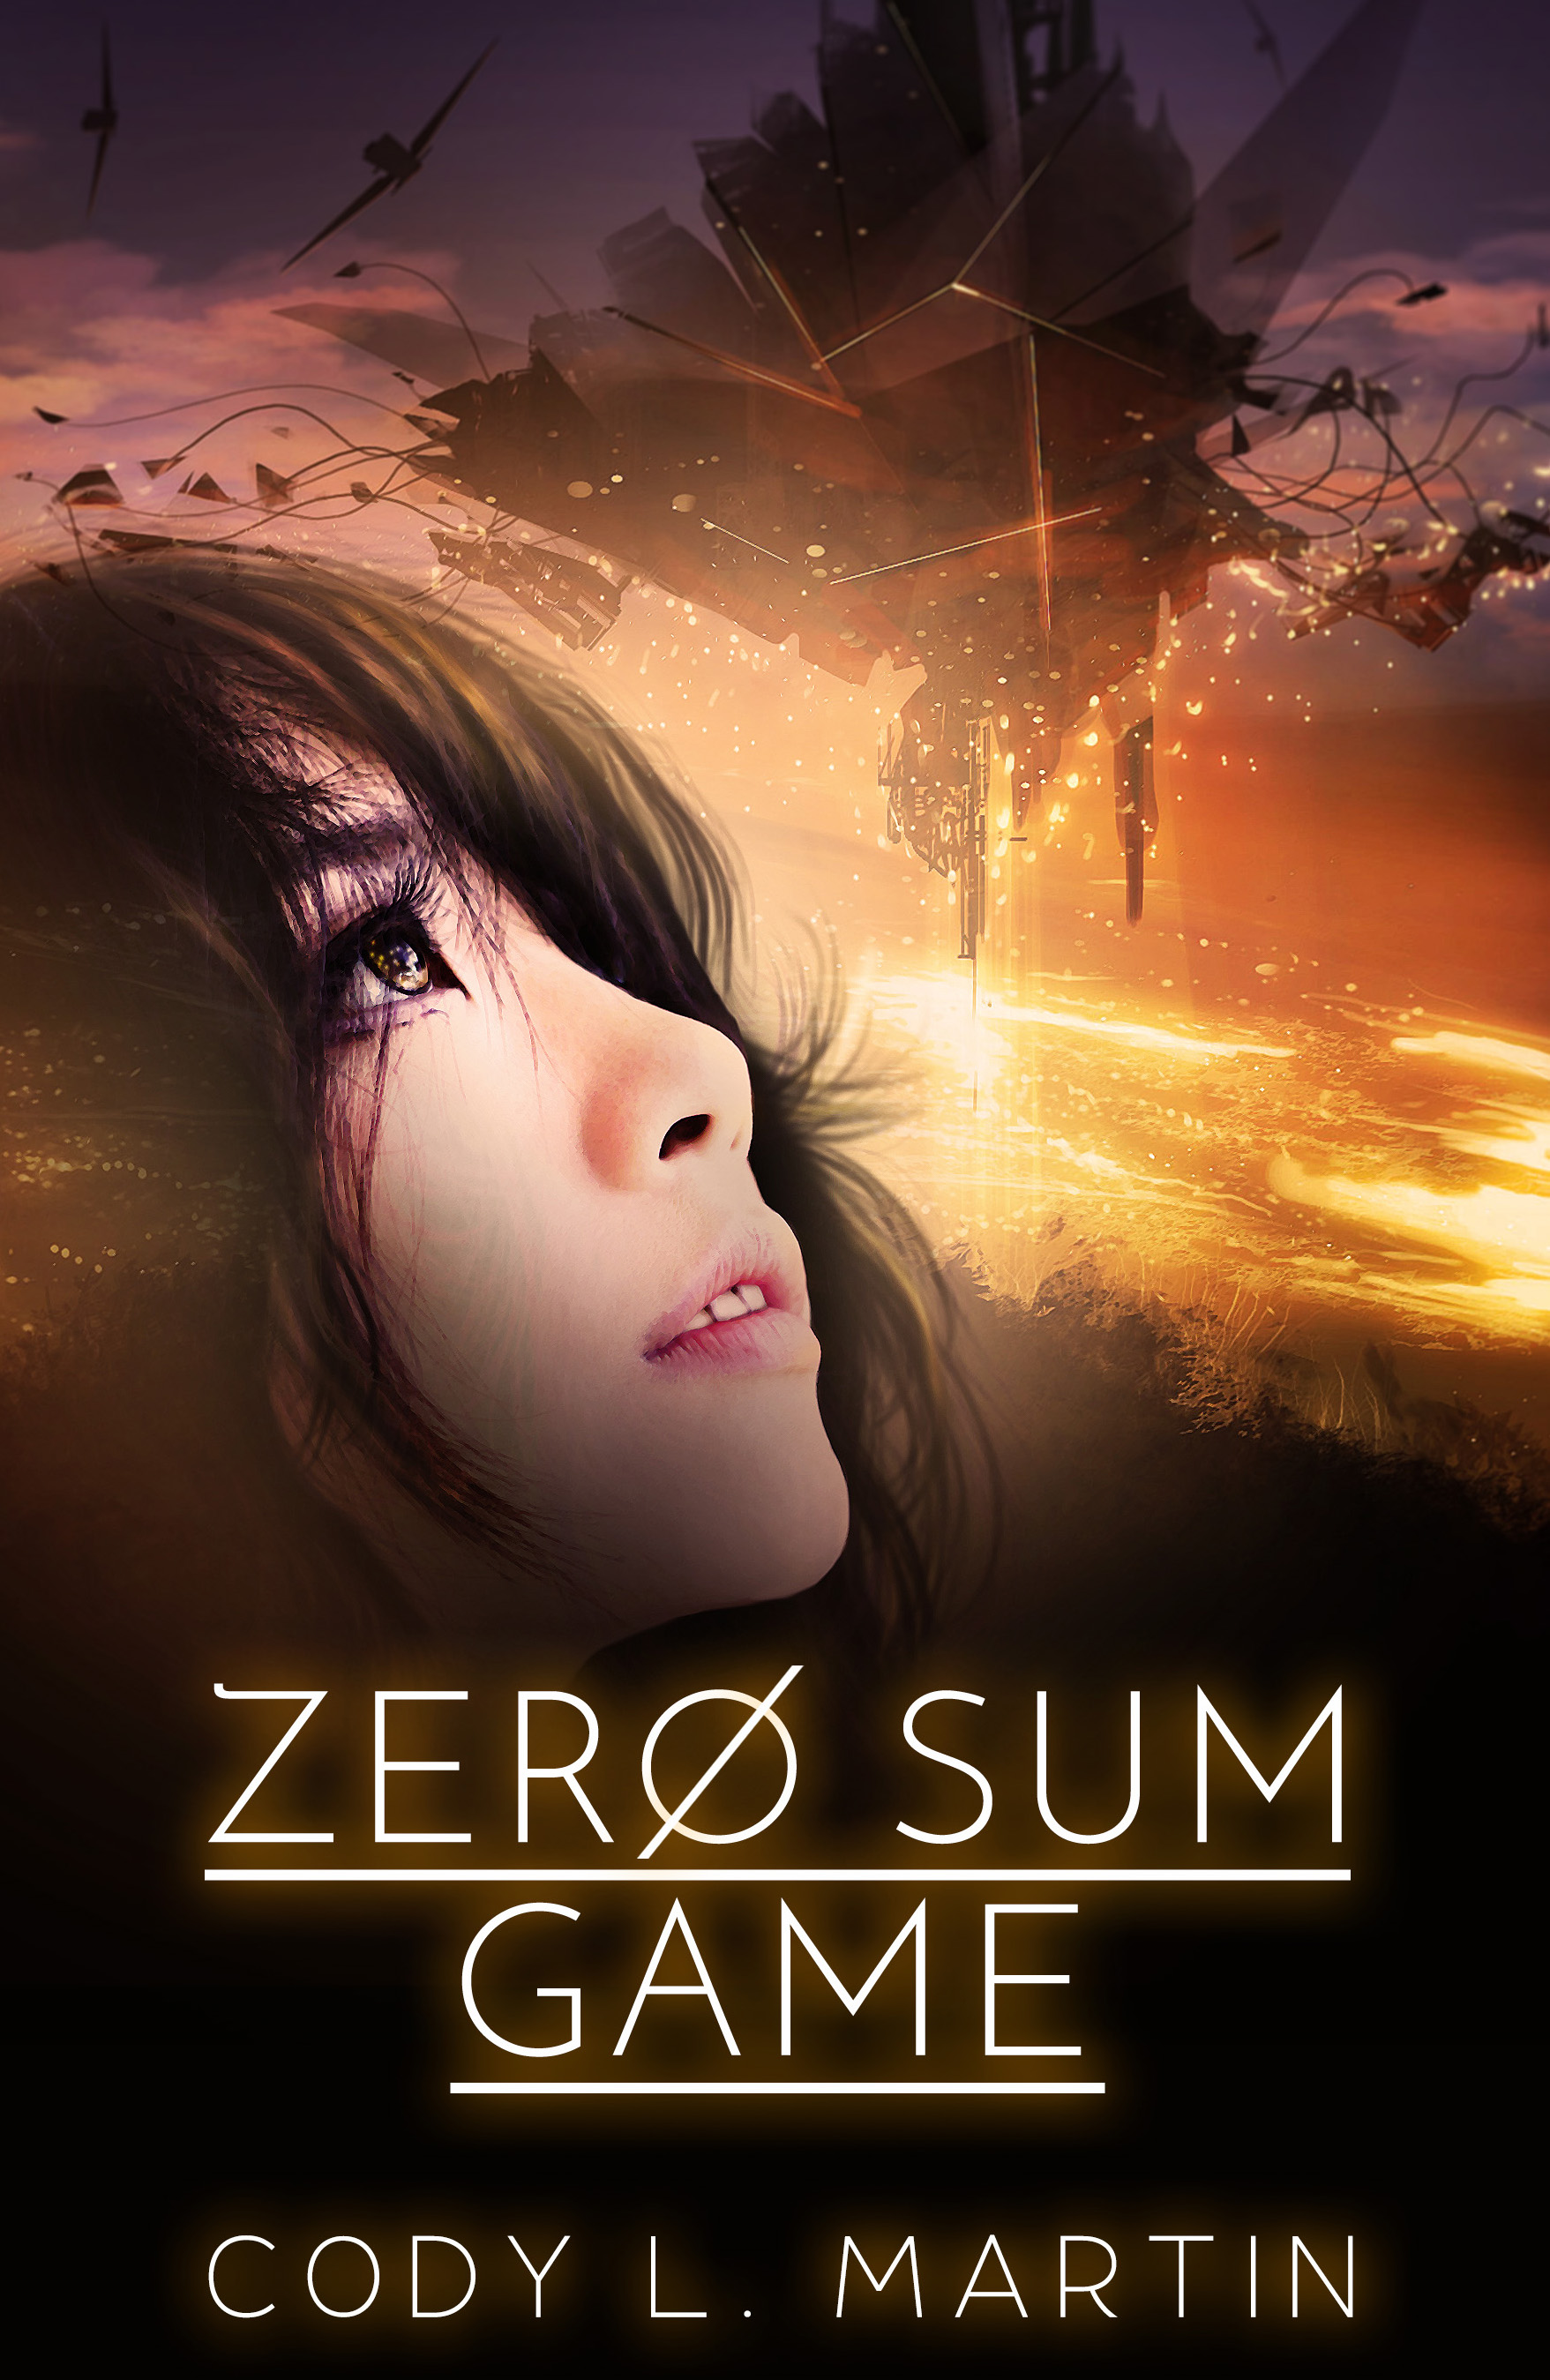 """Zero Sum Game"""" – Science Fiction Adventure in a Japanese setting"""